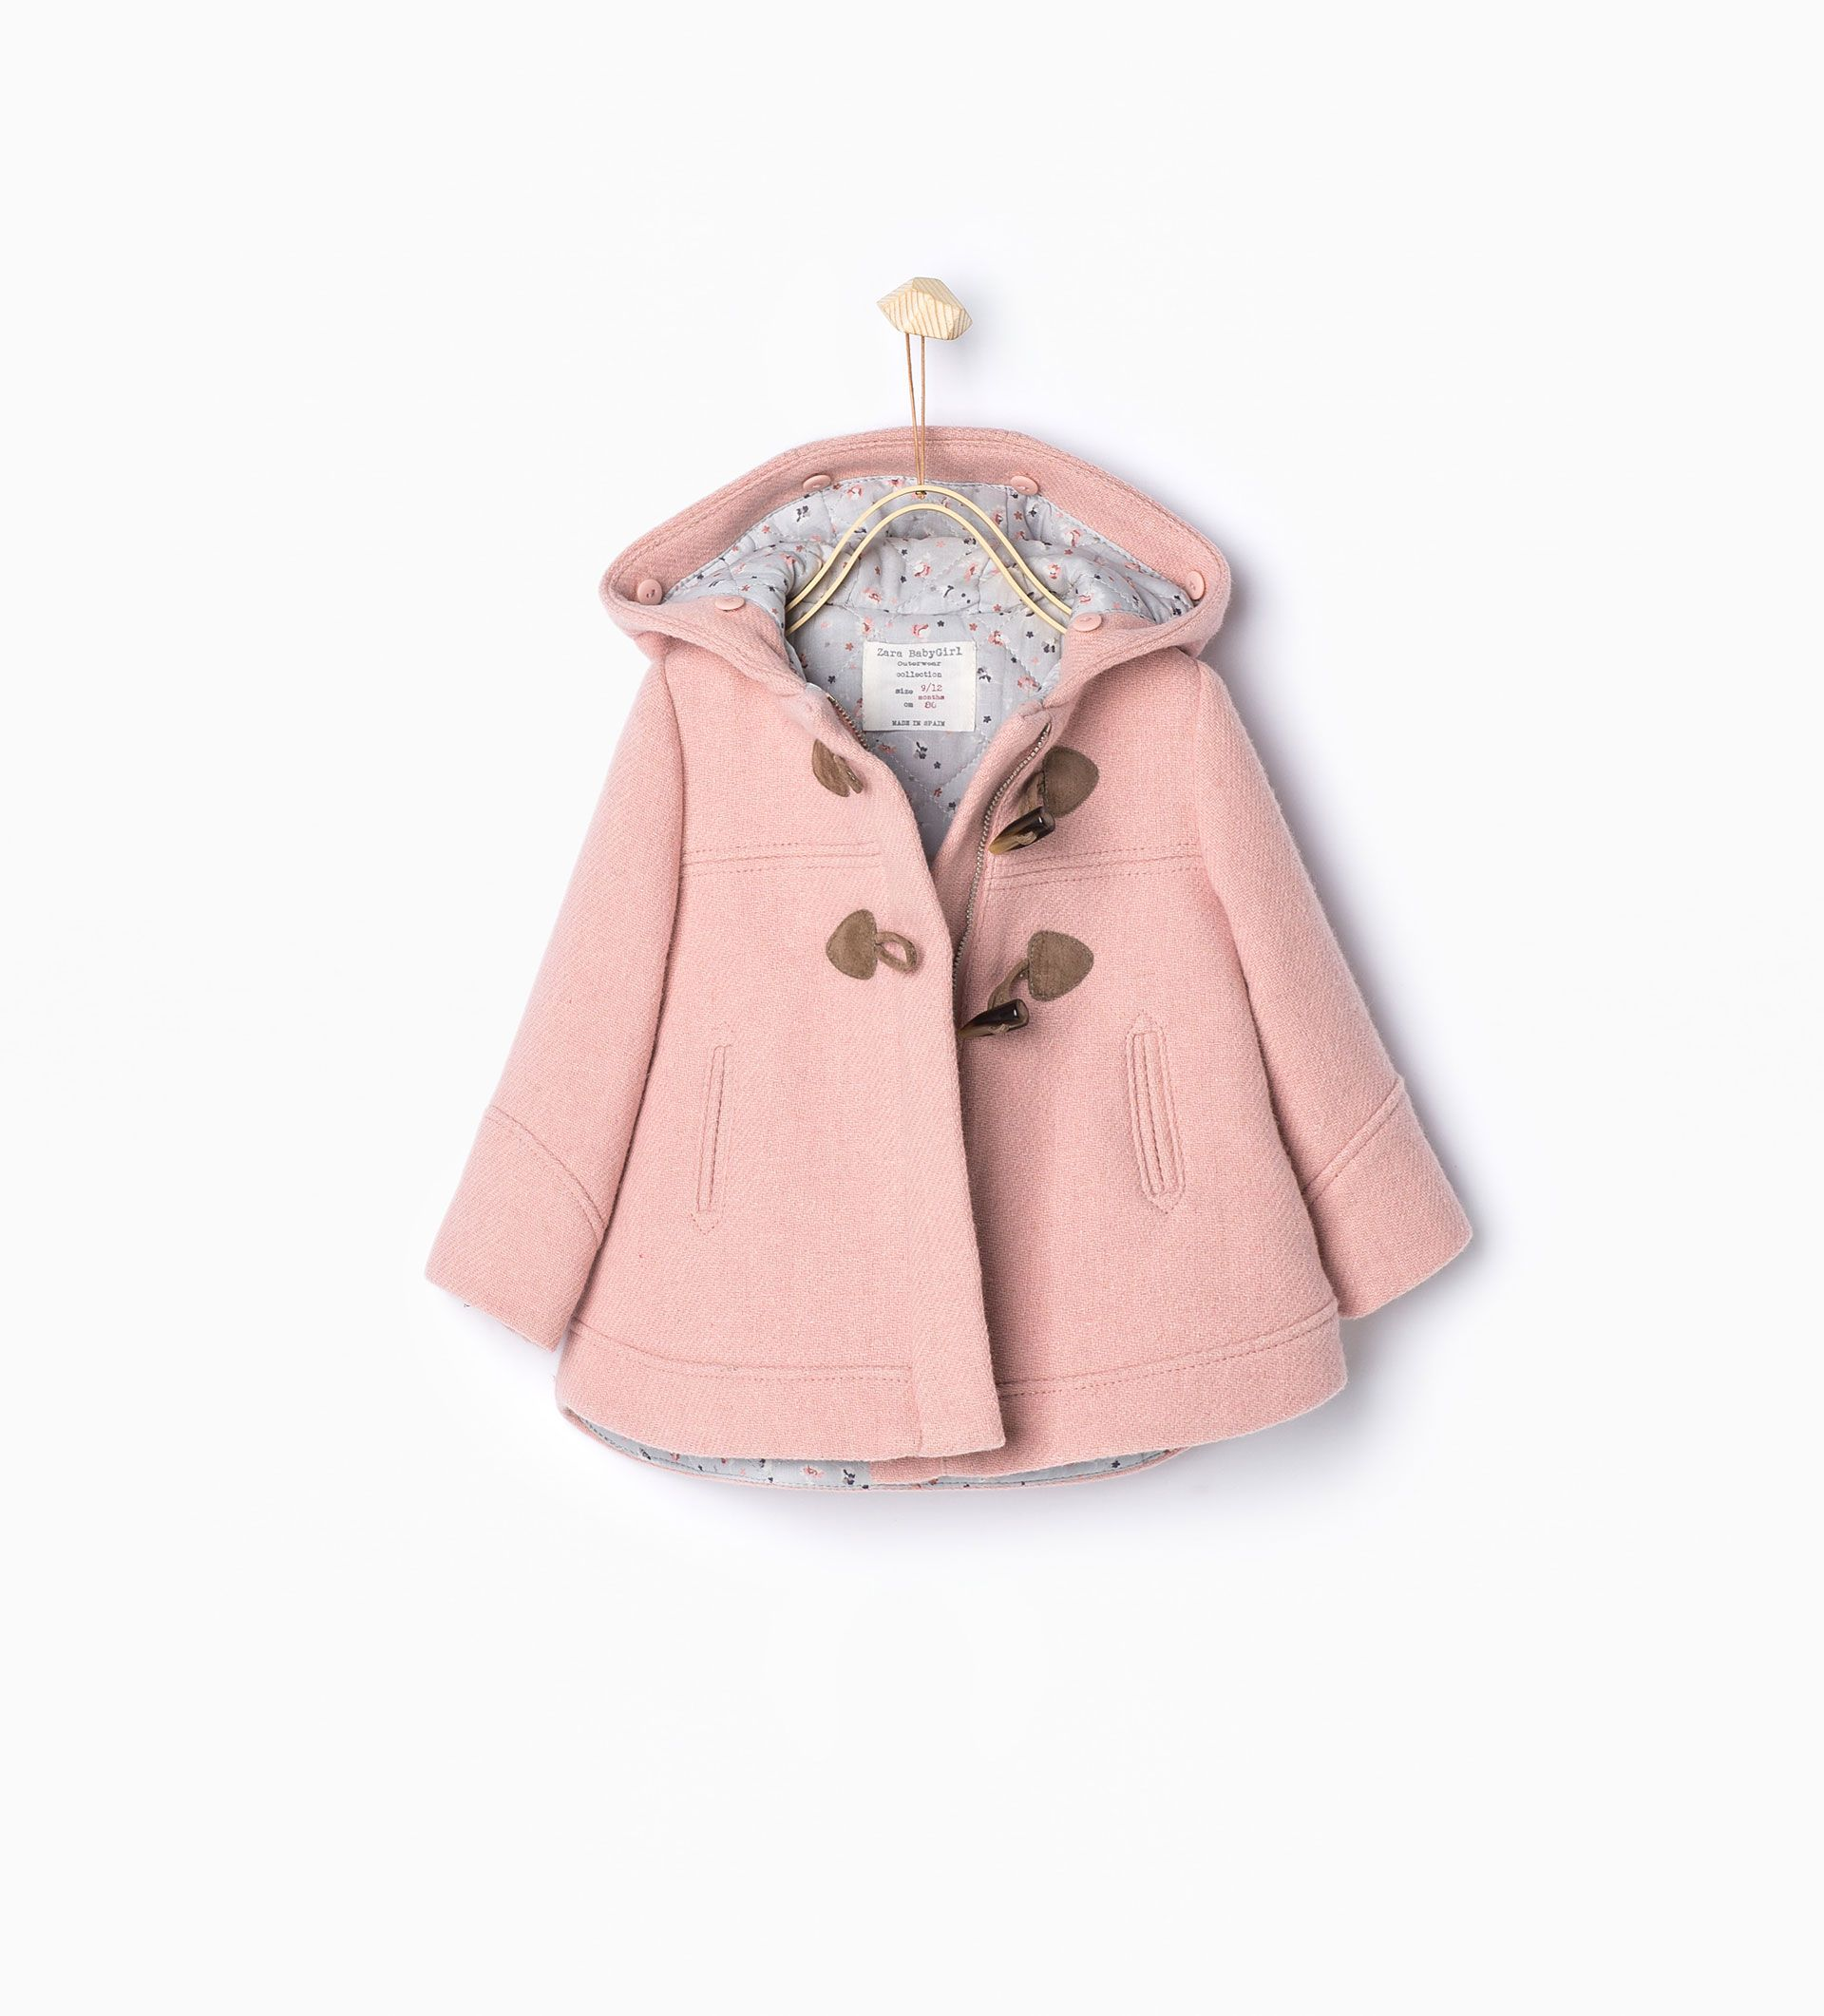 22d905ff0b35 Coats - Baby girl (3 months - 3 years) - KIDS